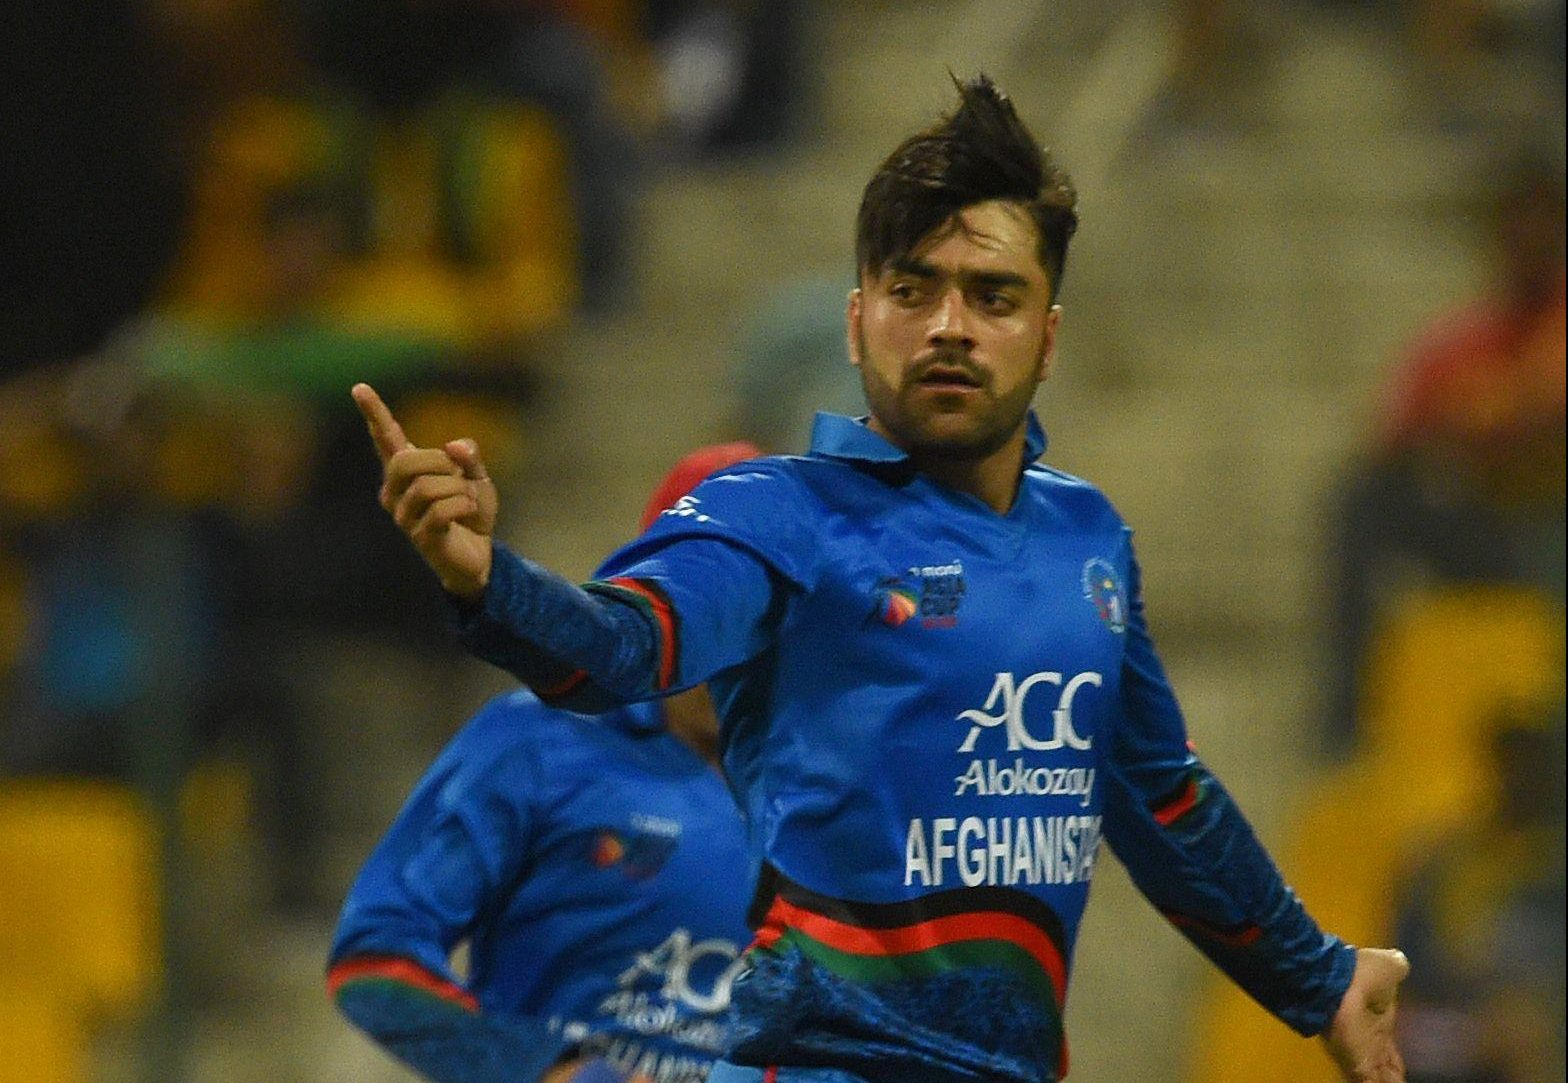 Rashid Khan will be crucial to Afghanistan's hopes in the Asia Cup